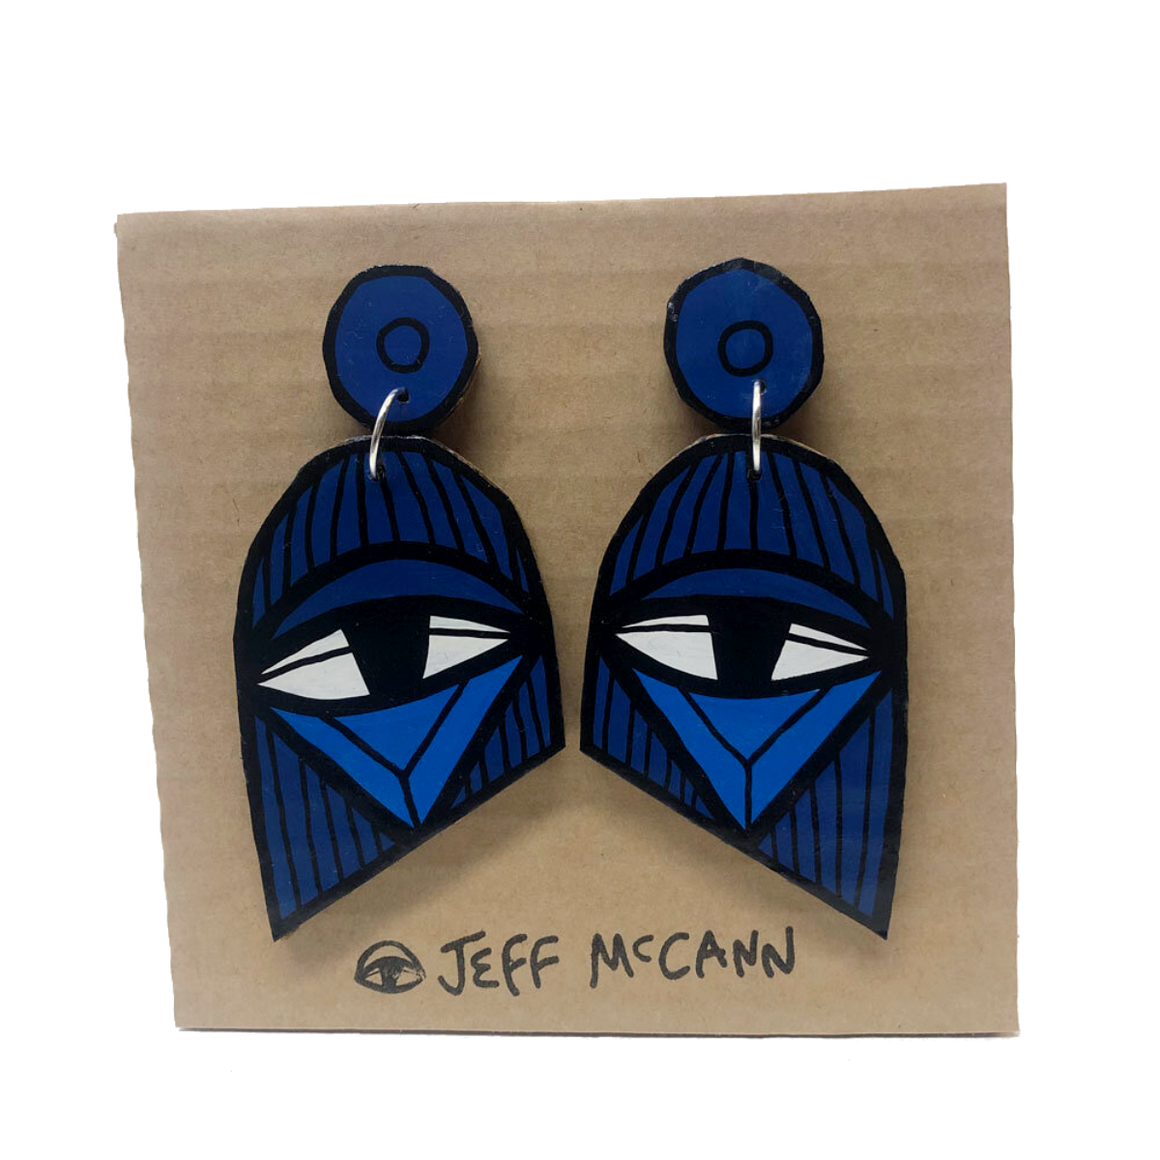 A Pair of Drop Earrings made of hand painted cardboard. A geometric design in the shape of two eyes in orange within an abstract geometric shape - in blue tones and white.